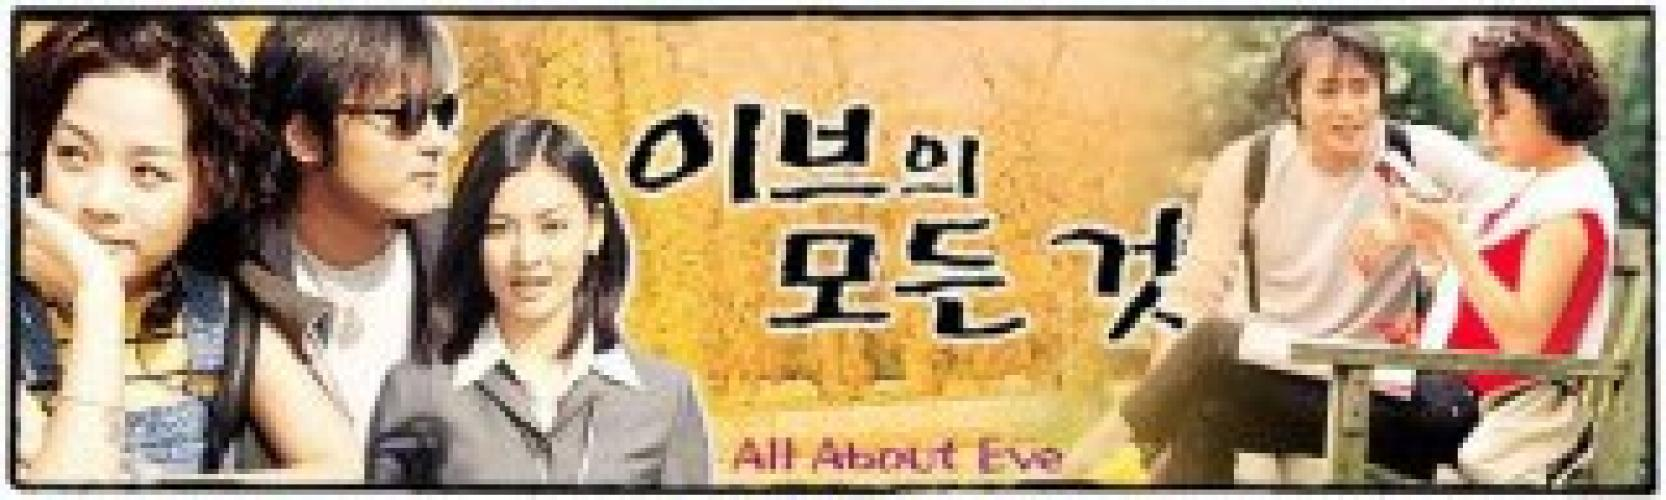 All About Eve next episode air date poster